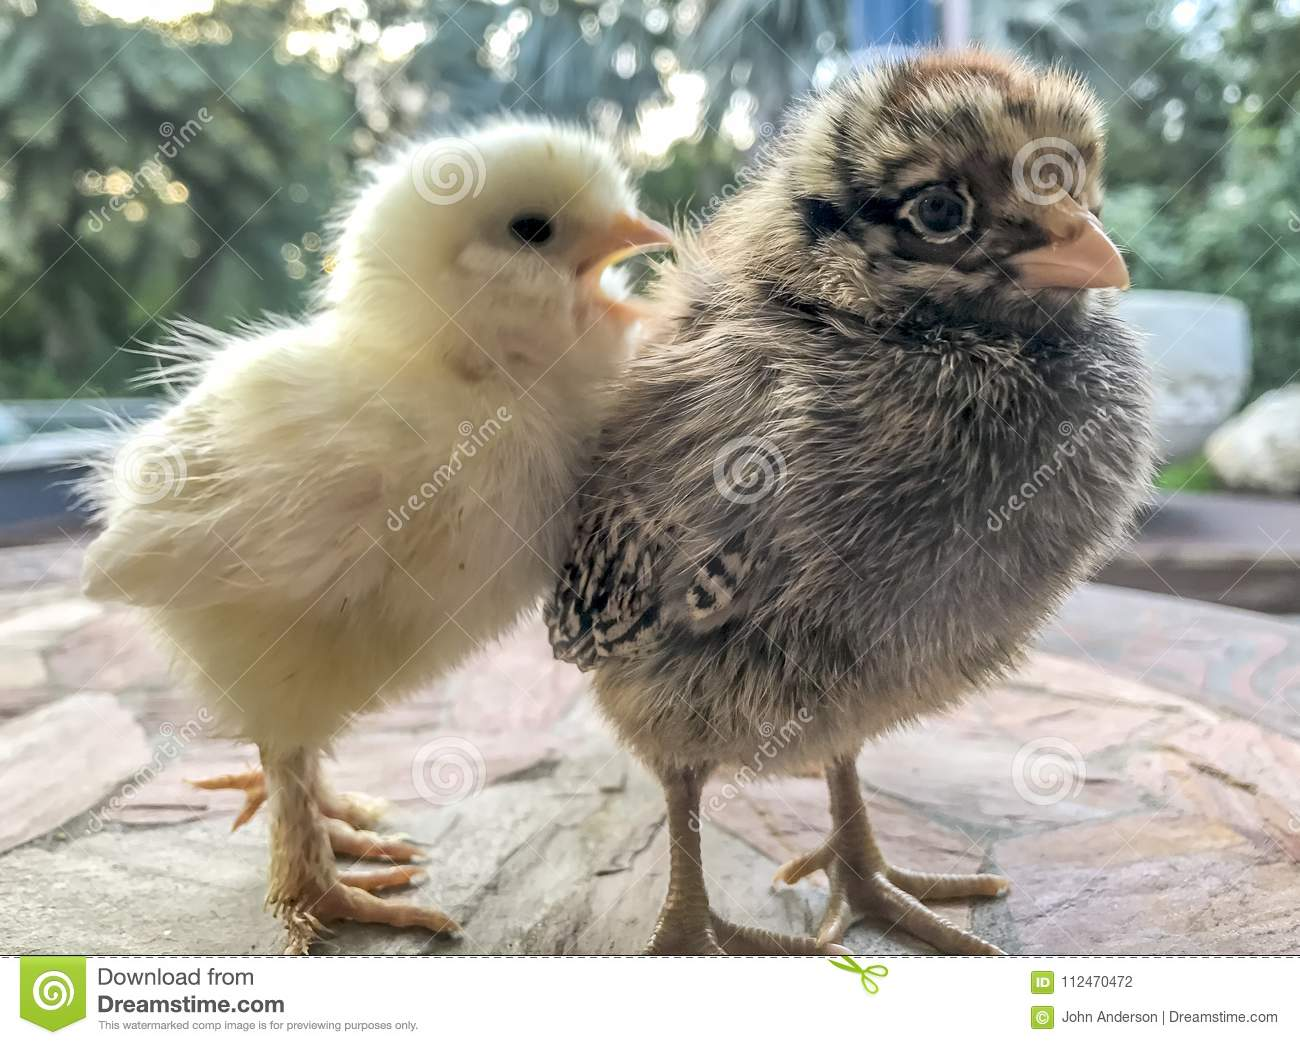 Baby chicks pictures only 178 best Cute Chicks Pretty Hens images on Pinterest Hens